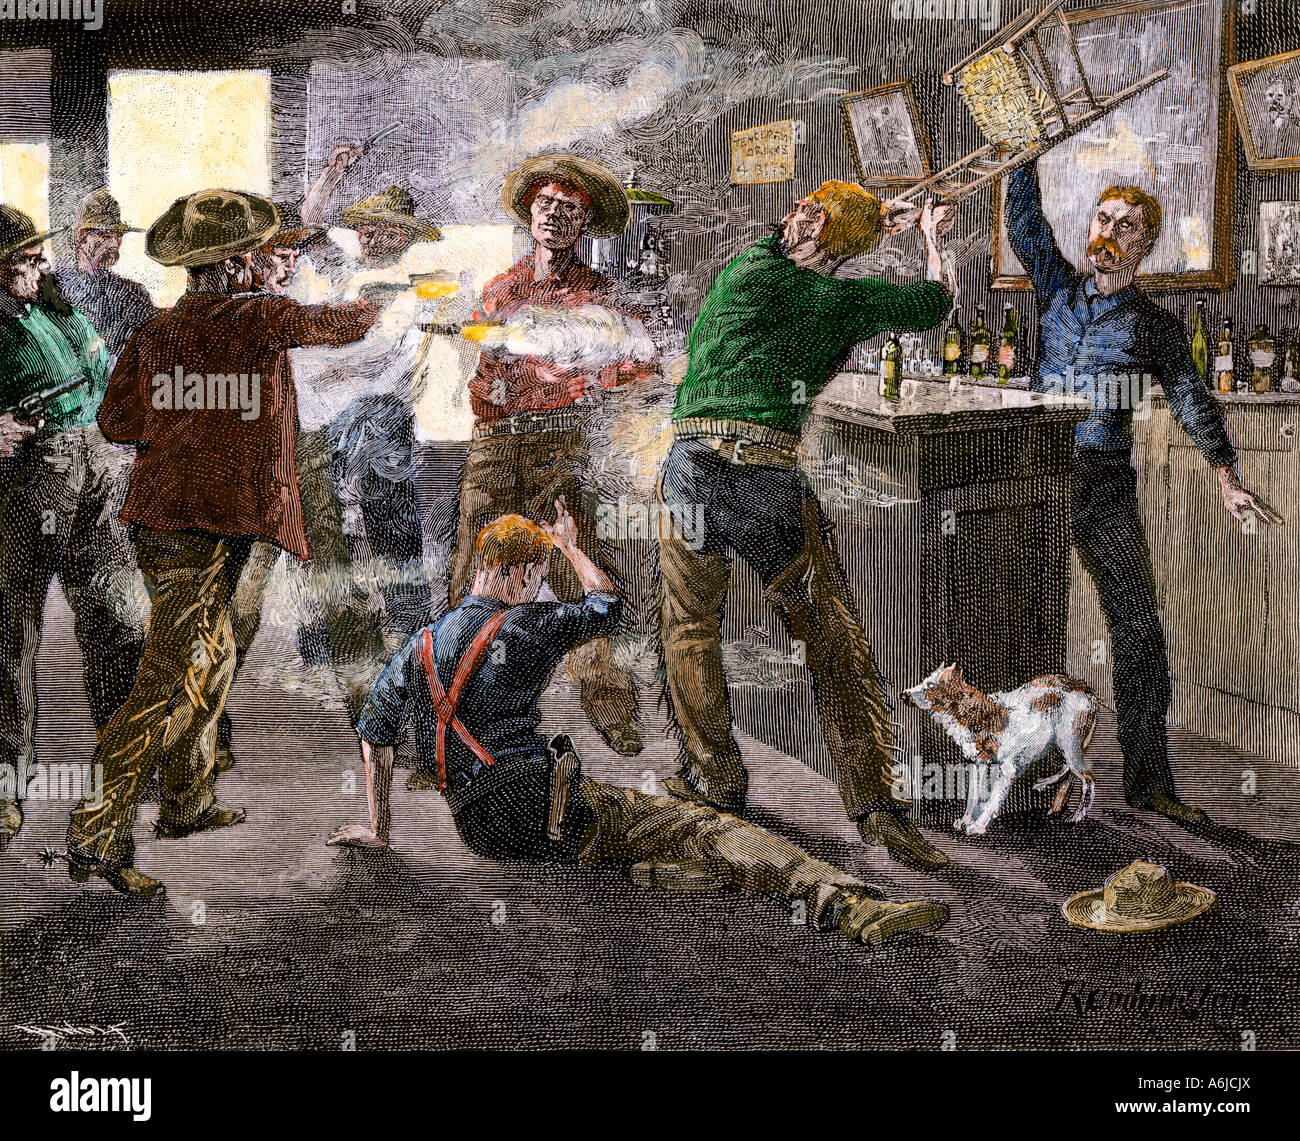 Saloon brawl in a western cattle town in the late 1800s. Hand-colored woodcut of a Frederic Remington illustration - Stock Image